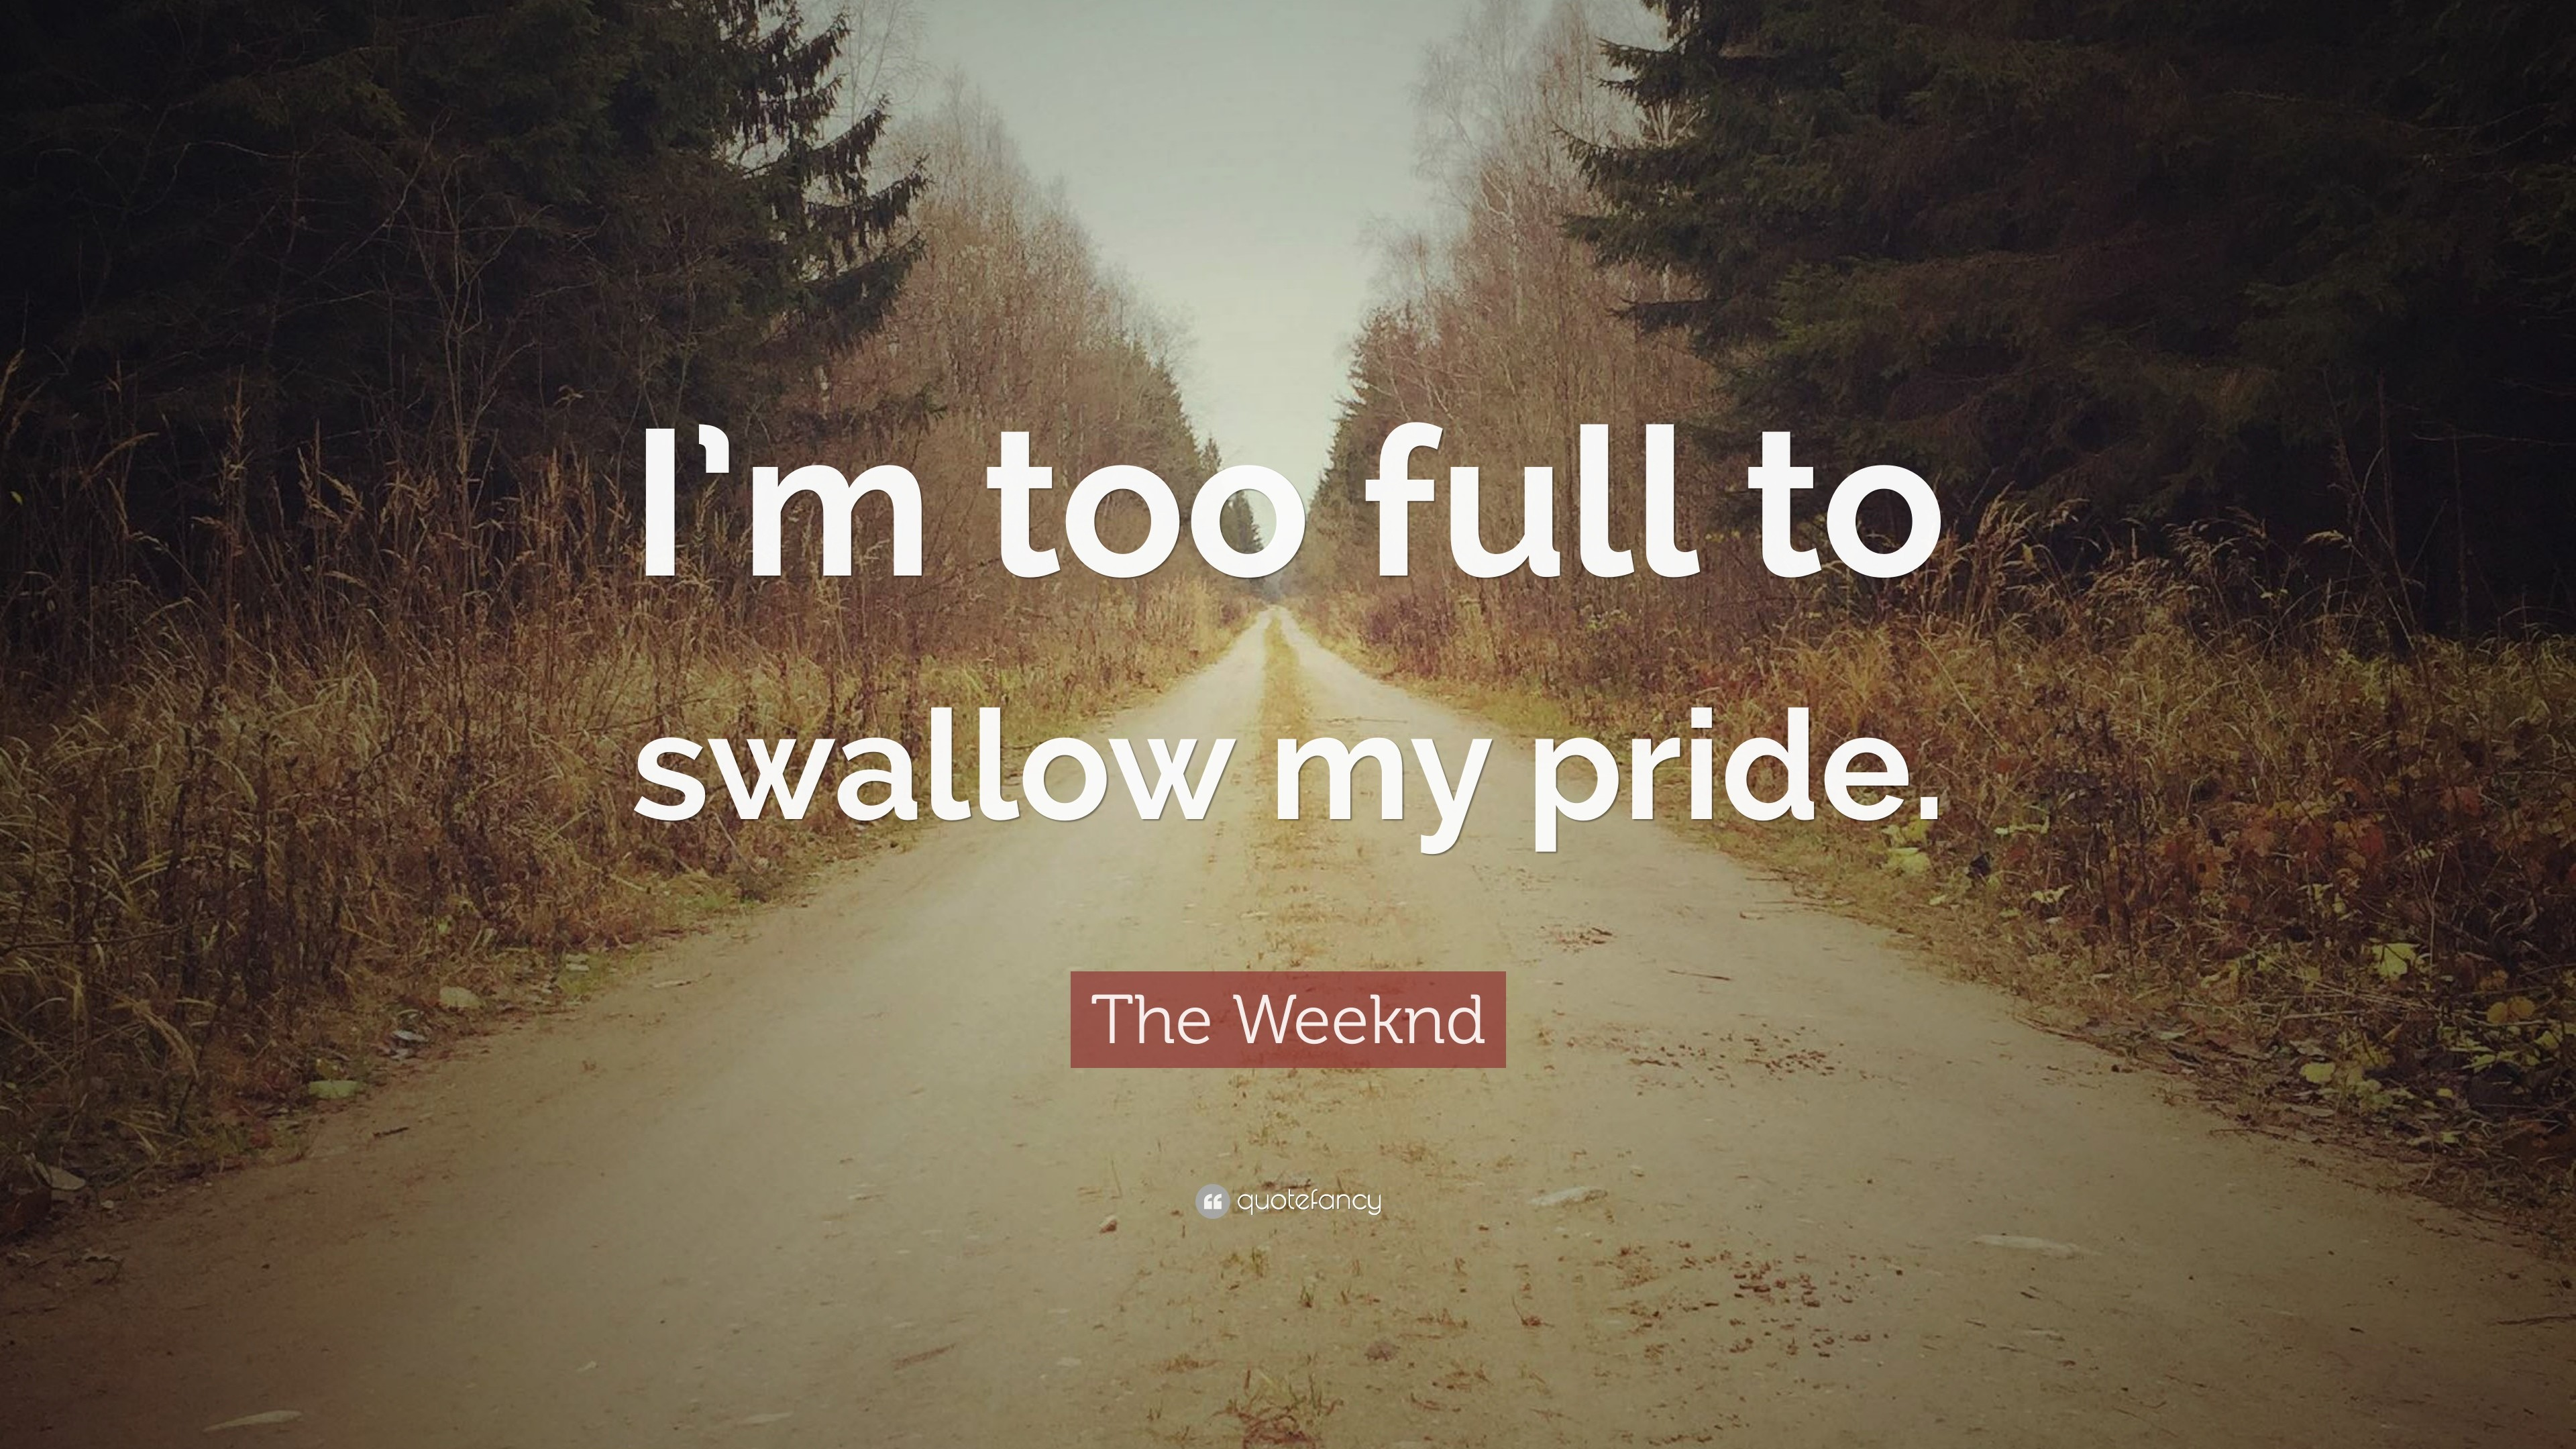 The Weeknd Kiss Land Quotes – wallpaper.